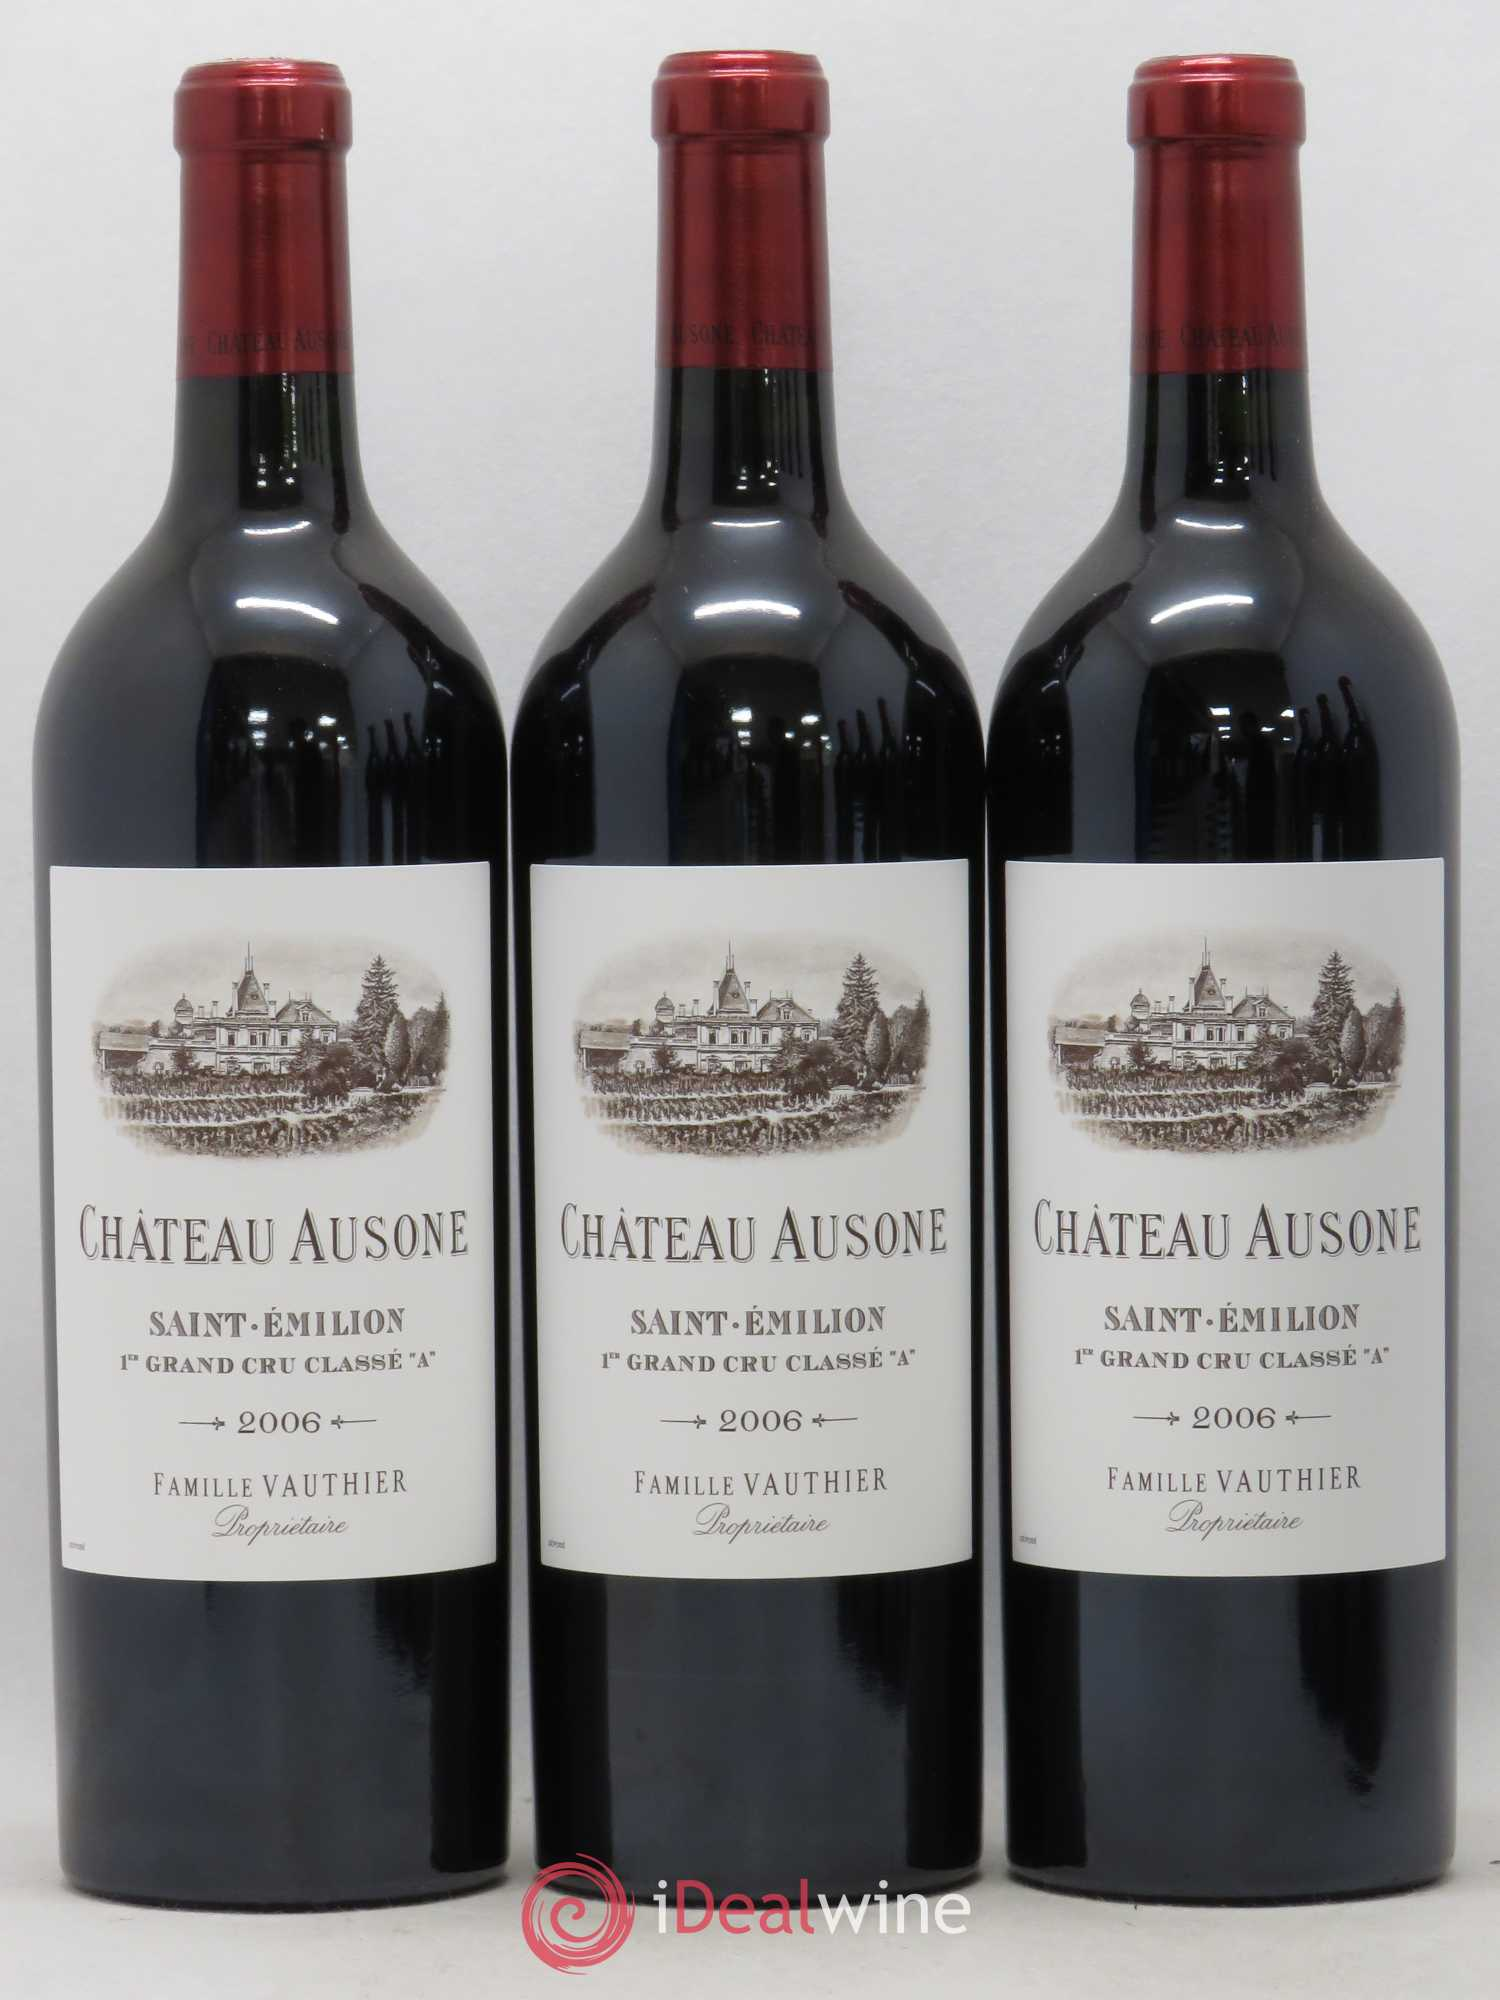 Château Ausone 1er Grand Cru Classé A  2006 - Lot of 3 Bottles